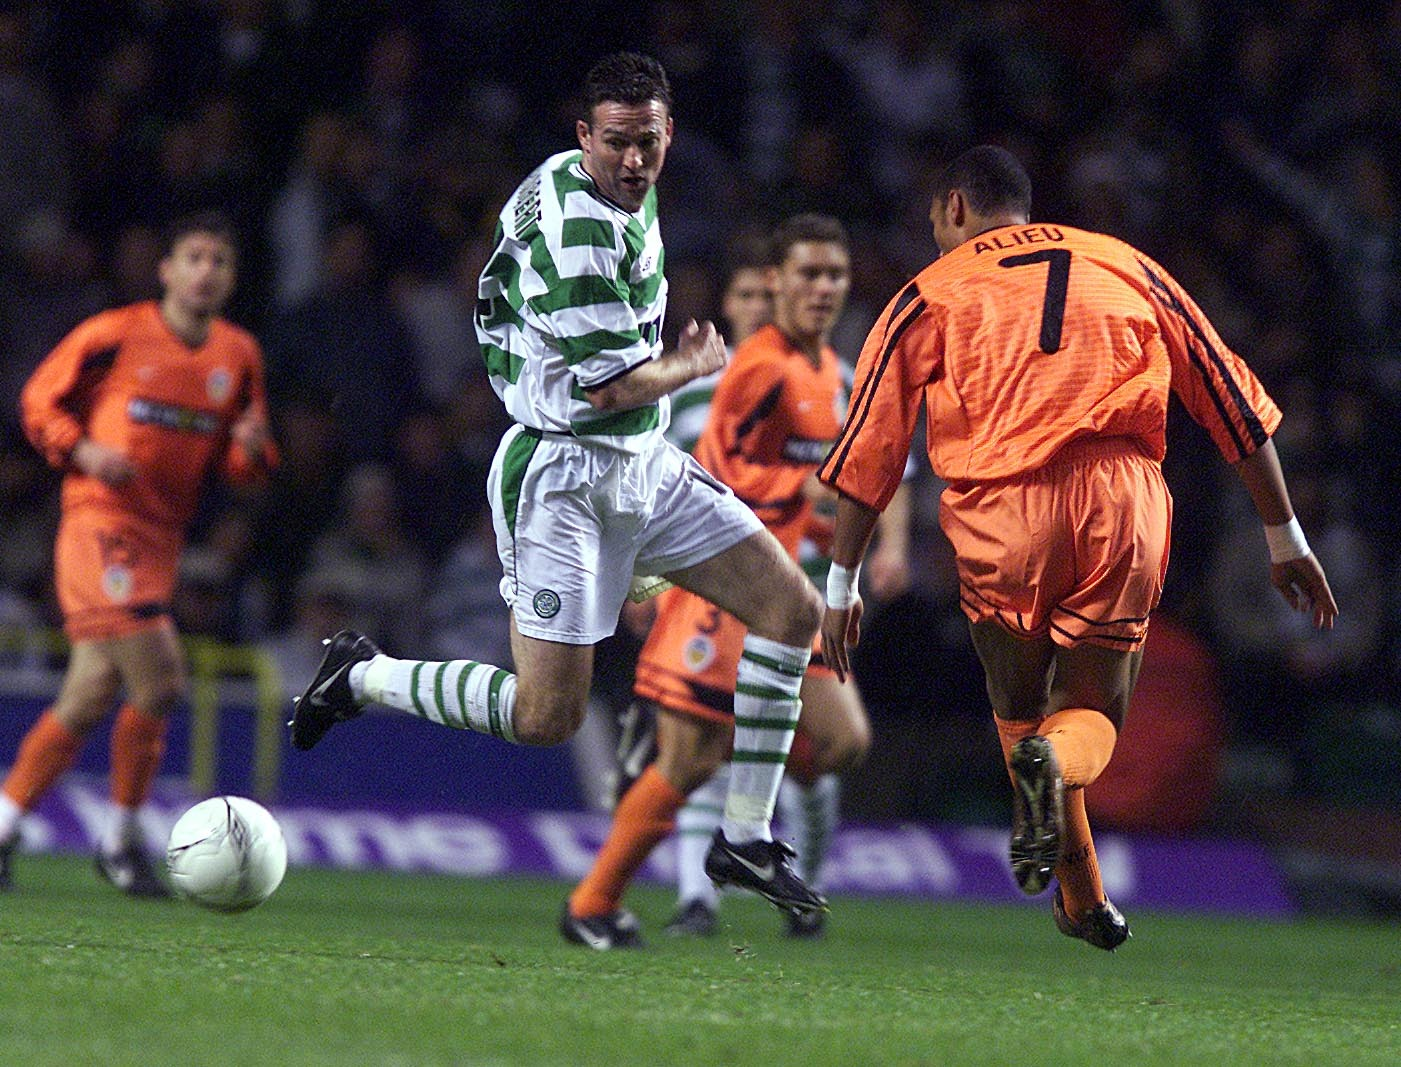 Paul Lambert keeps his eye on the ball during Celtic's match against Valencia in 2001